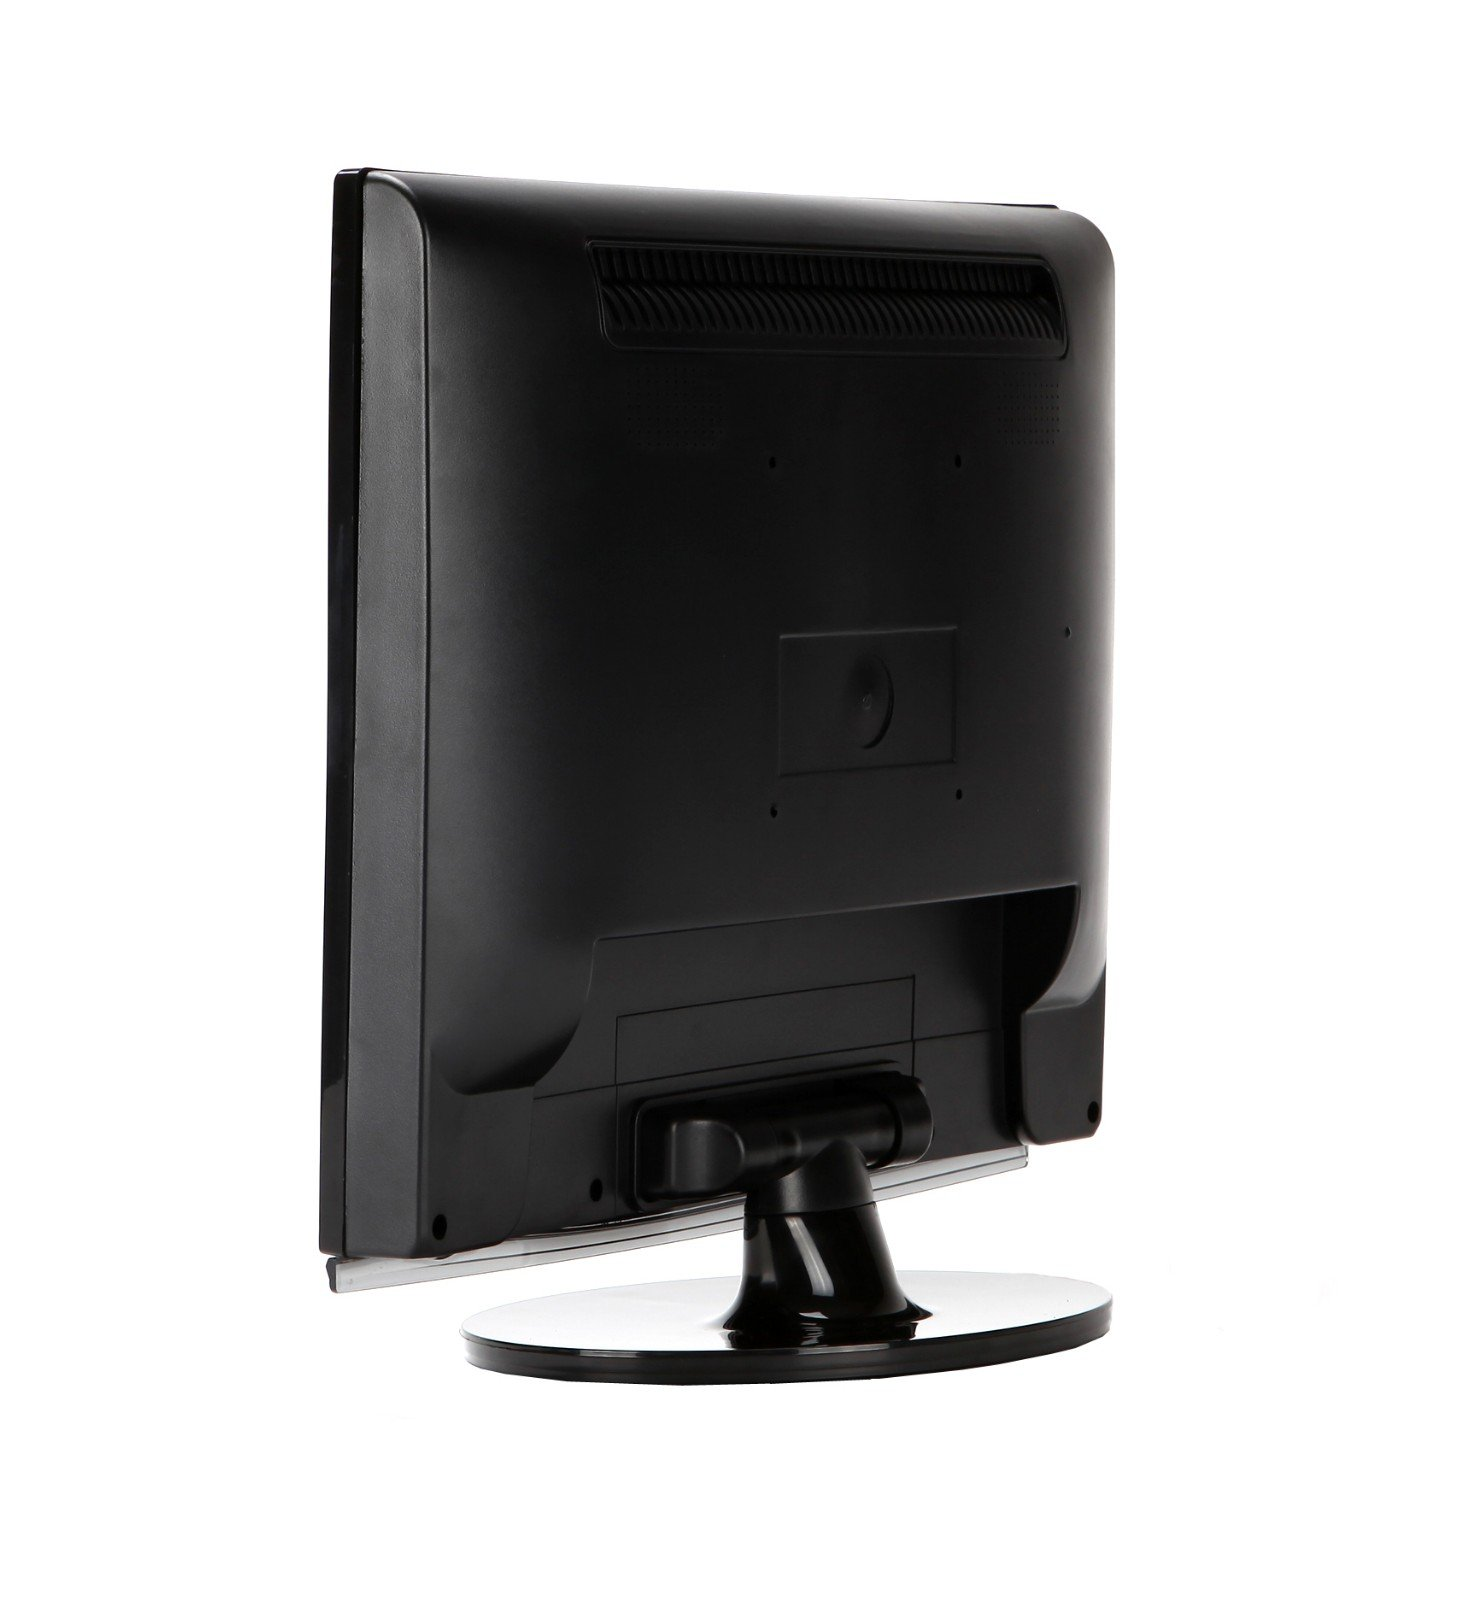 high quality 15 lcd monitor with hdmi output for lcd screen-5